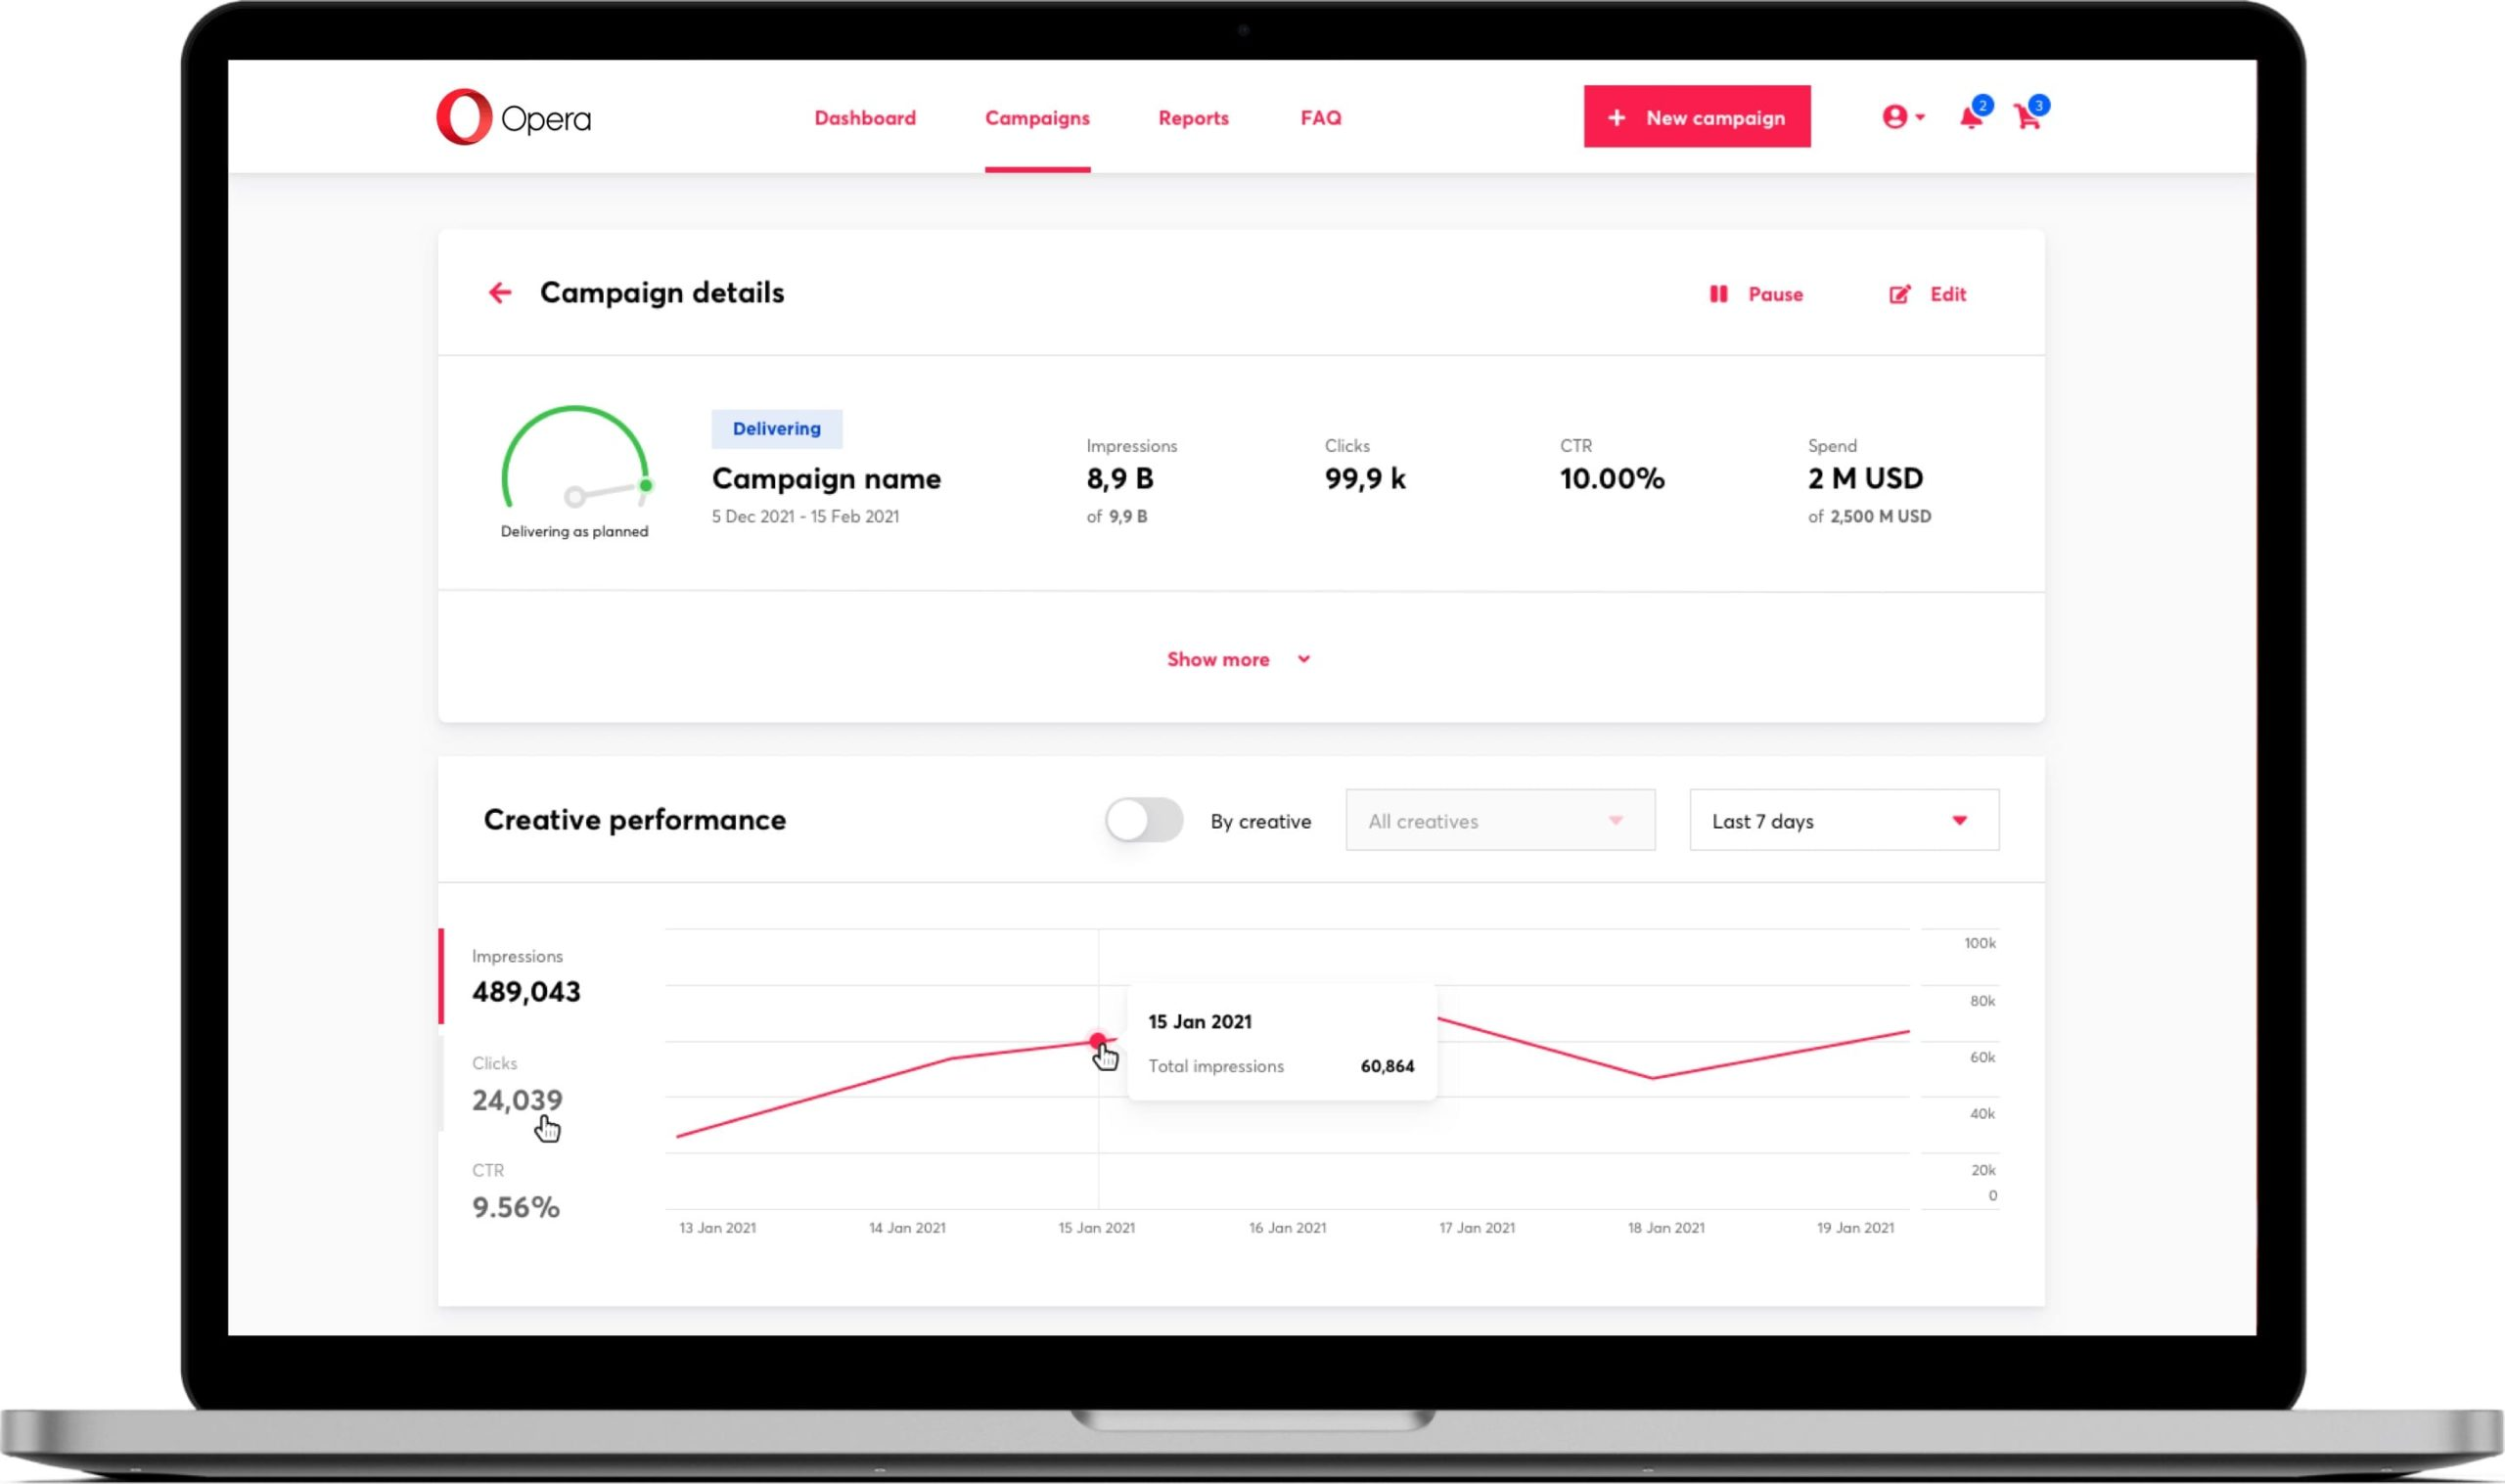 Opera launches new self-serve Ad Manger targeting Publishers